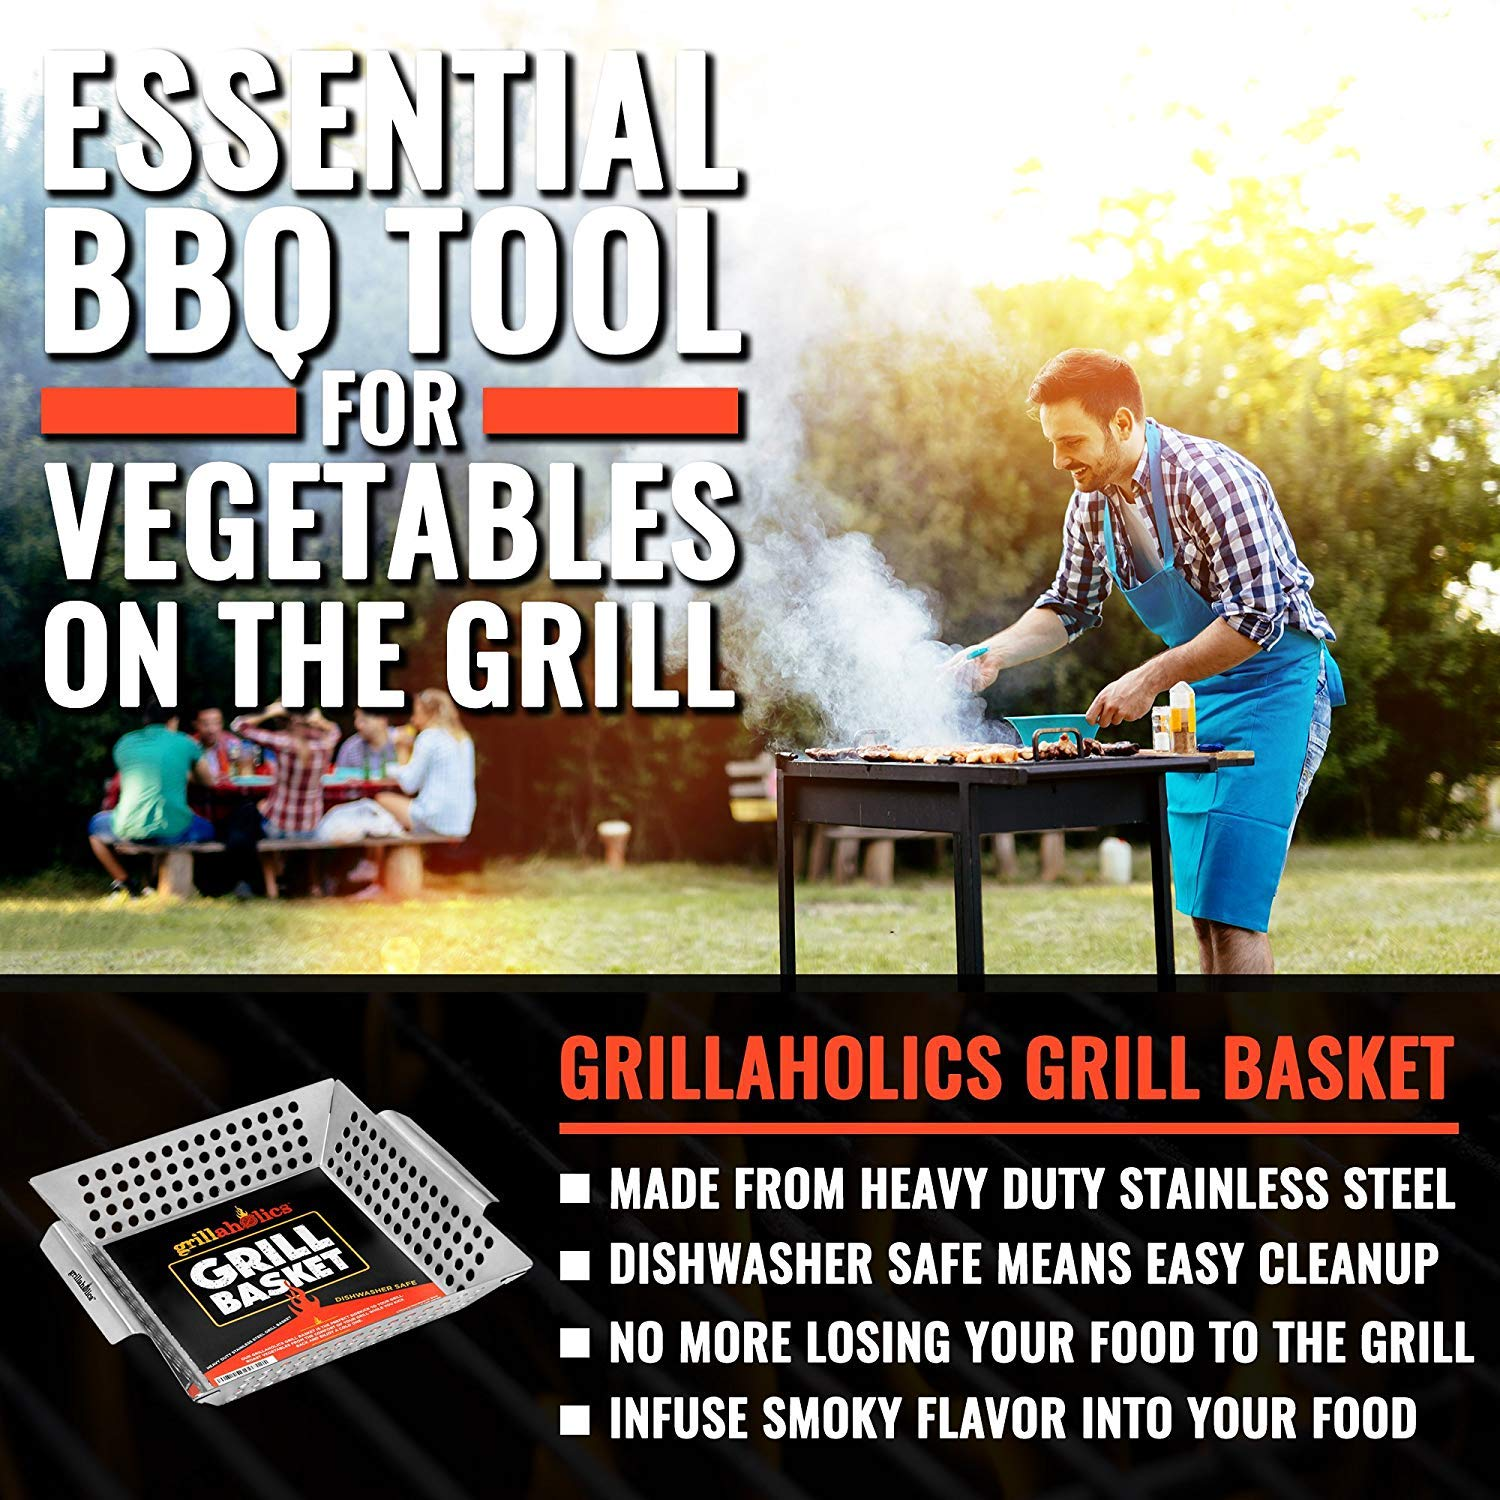 Grillaholics Grill Basket - Large Grilling Basket for More Vegetables - Heavy Duty Stainless Steel Grilling Accessories Built to Last - Perfect Vegetable Grill Basket for All Grills and Veggies by Grillaholics (Image #2)